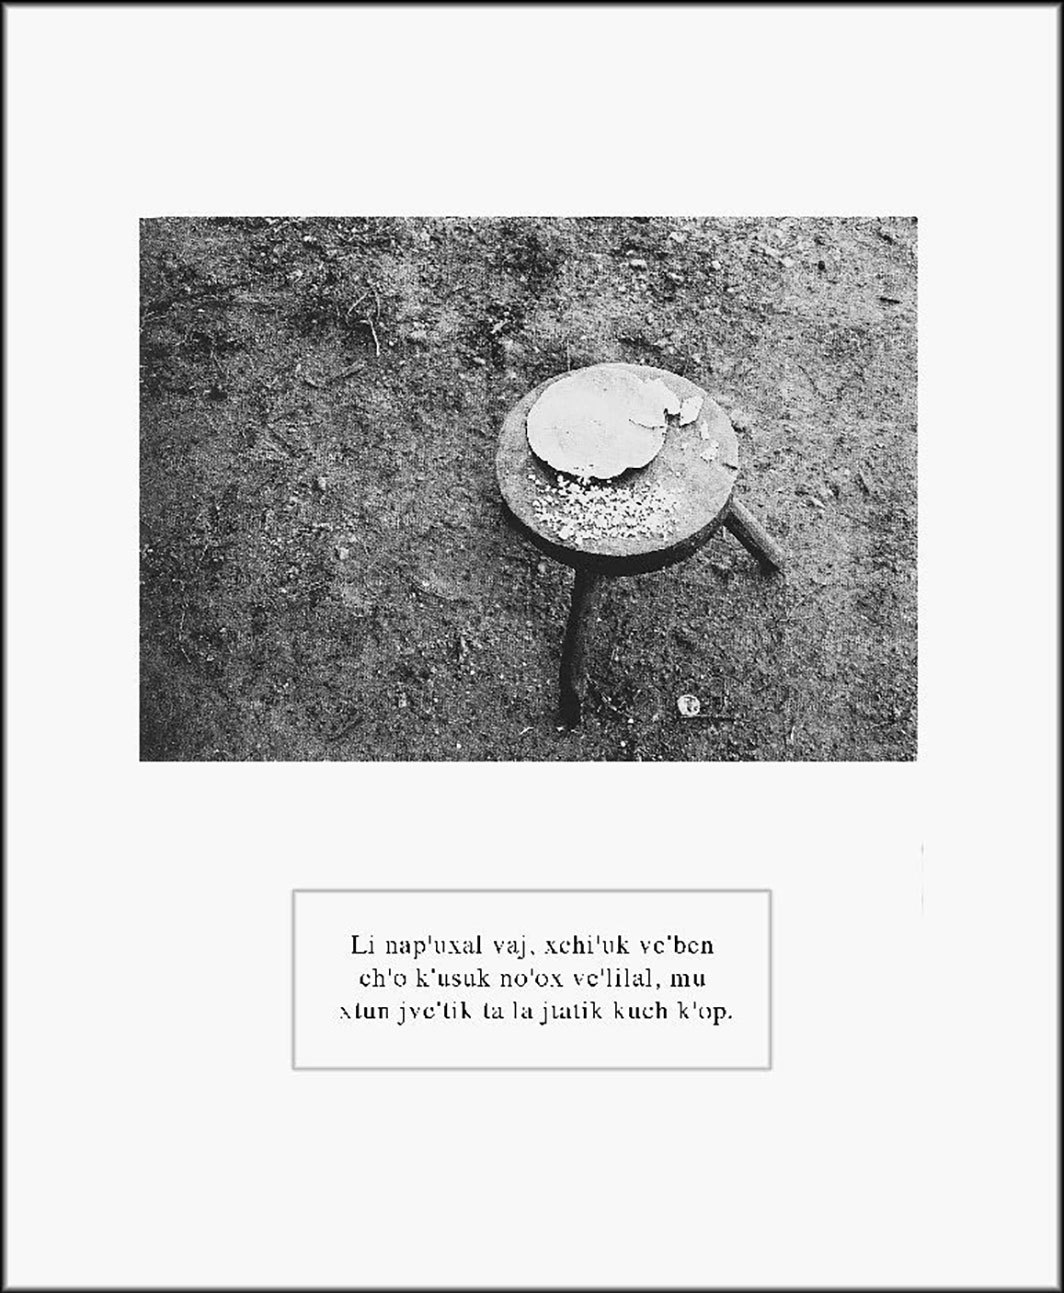 "Maruch Sántiz Gómez, Pedazos de tortilla quemada y lo mordido por el ratón (Pieces of Burnt Tortilla and Bitten by the Mouse), 1994, gelatin silver print on paper, 22 5⁄8 × 18 3⁄4"". From the series ""Creencias"" (Beliefs), 1994–96. From ""Los huecos del agua"" (The Gaps of Water)."